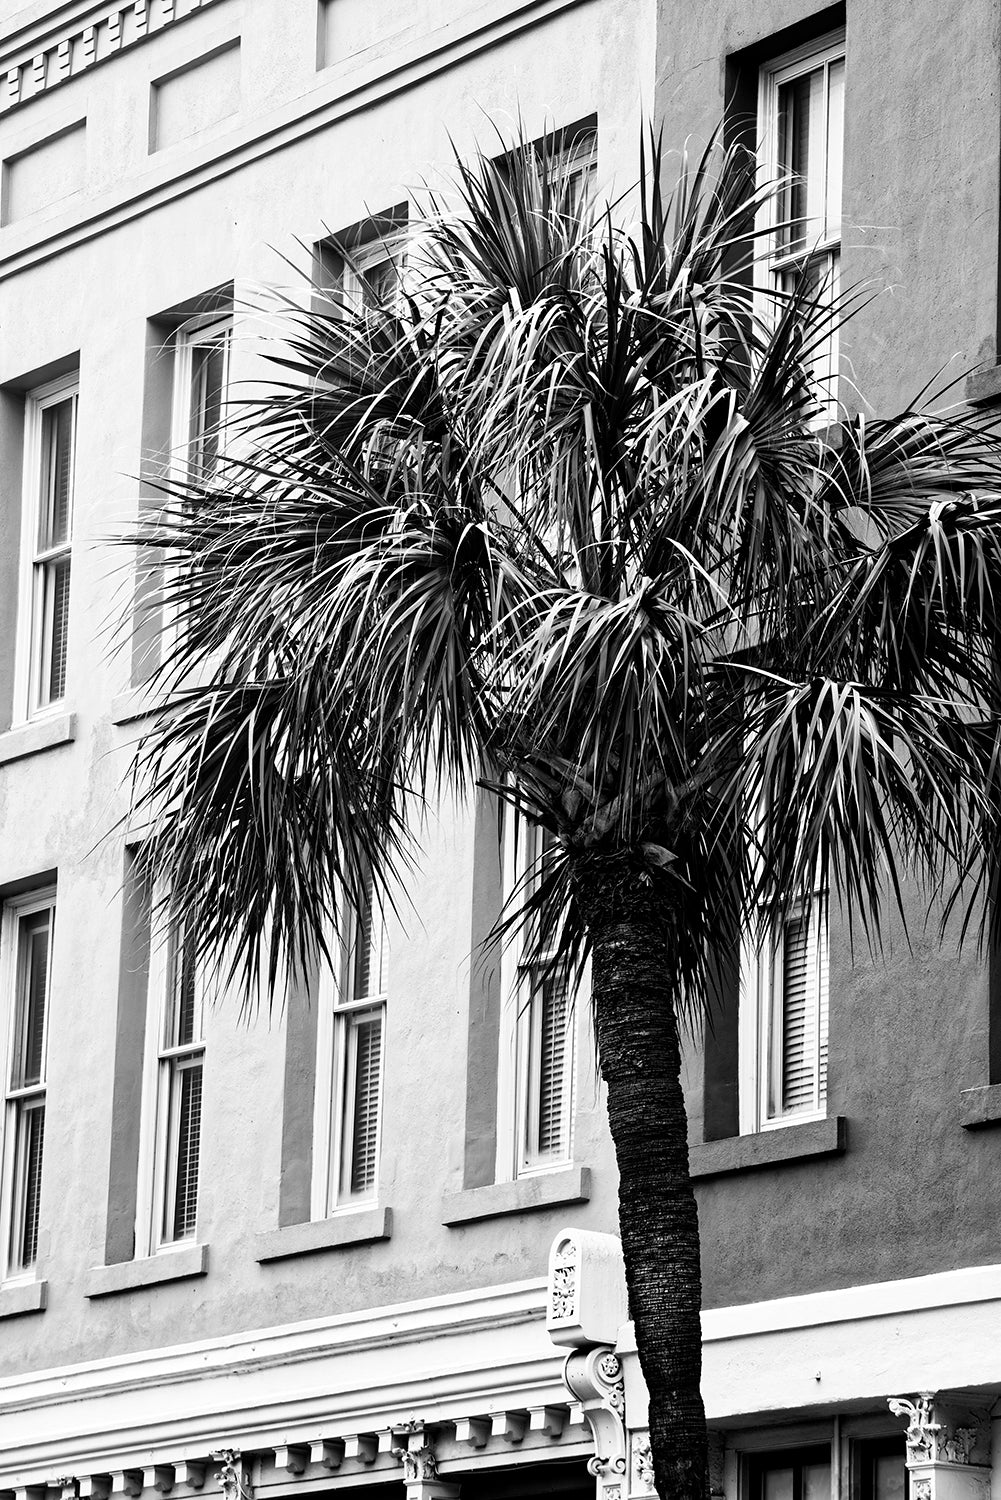 Charleston Urban Palm Tree - Black and White Photograph by Keith Dotson. Buy a fine art photograph here.